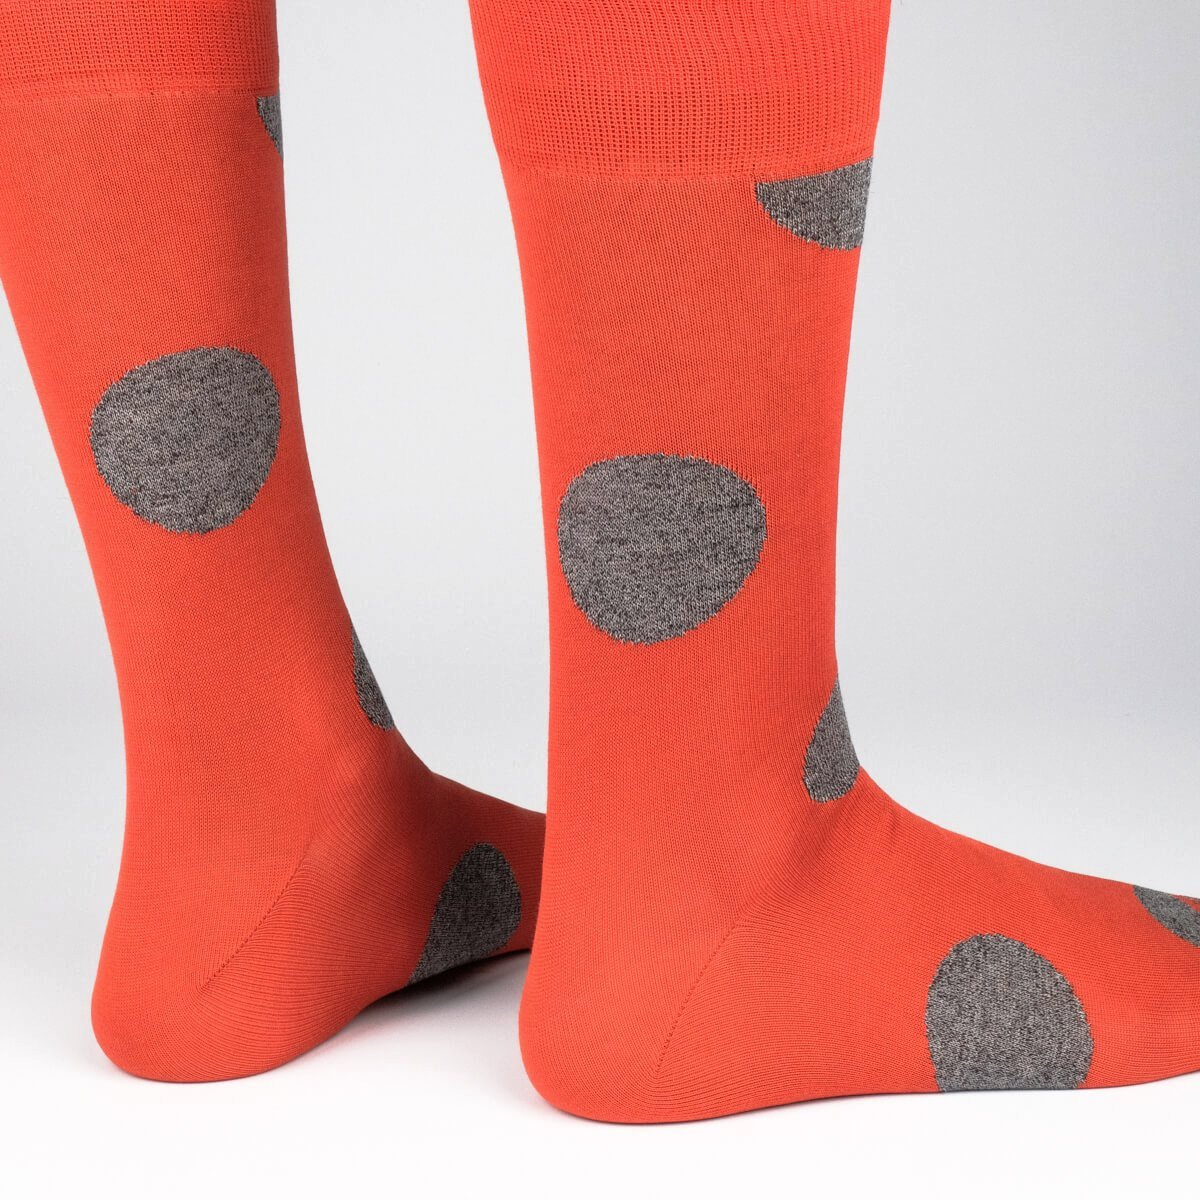 Big Dots - Orange - Image 3